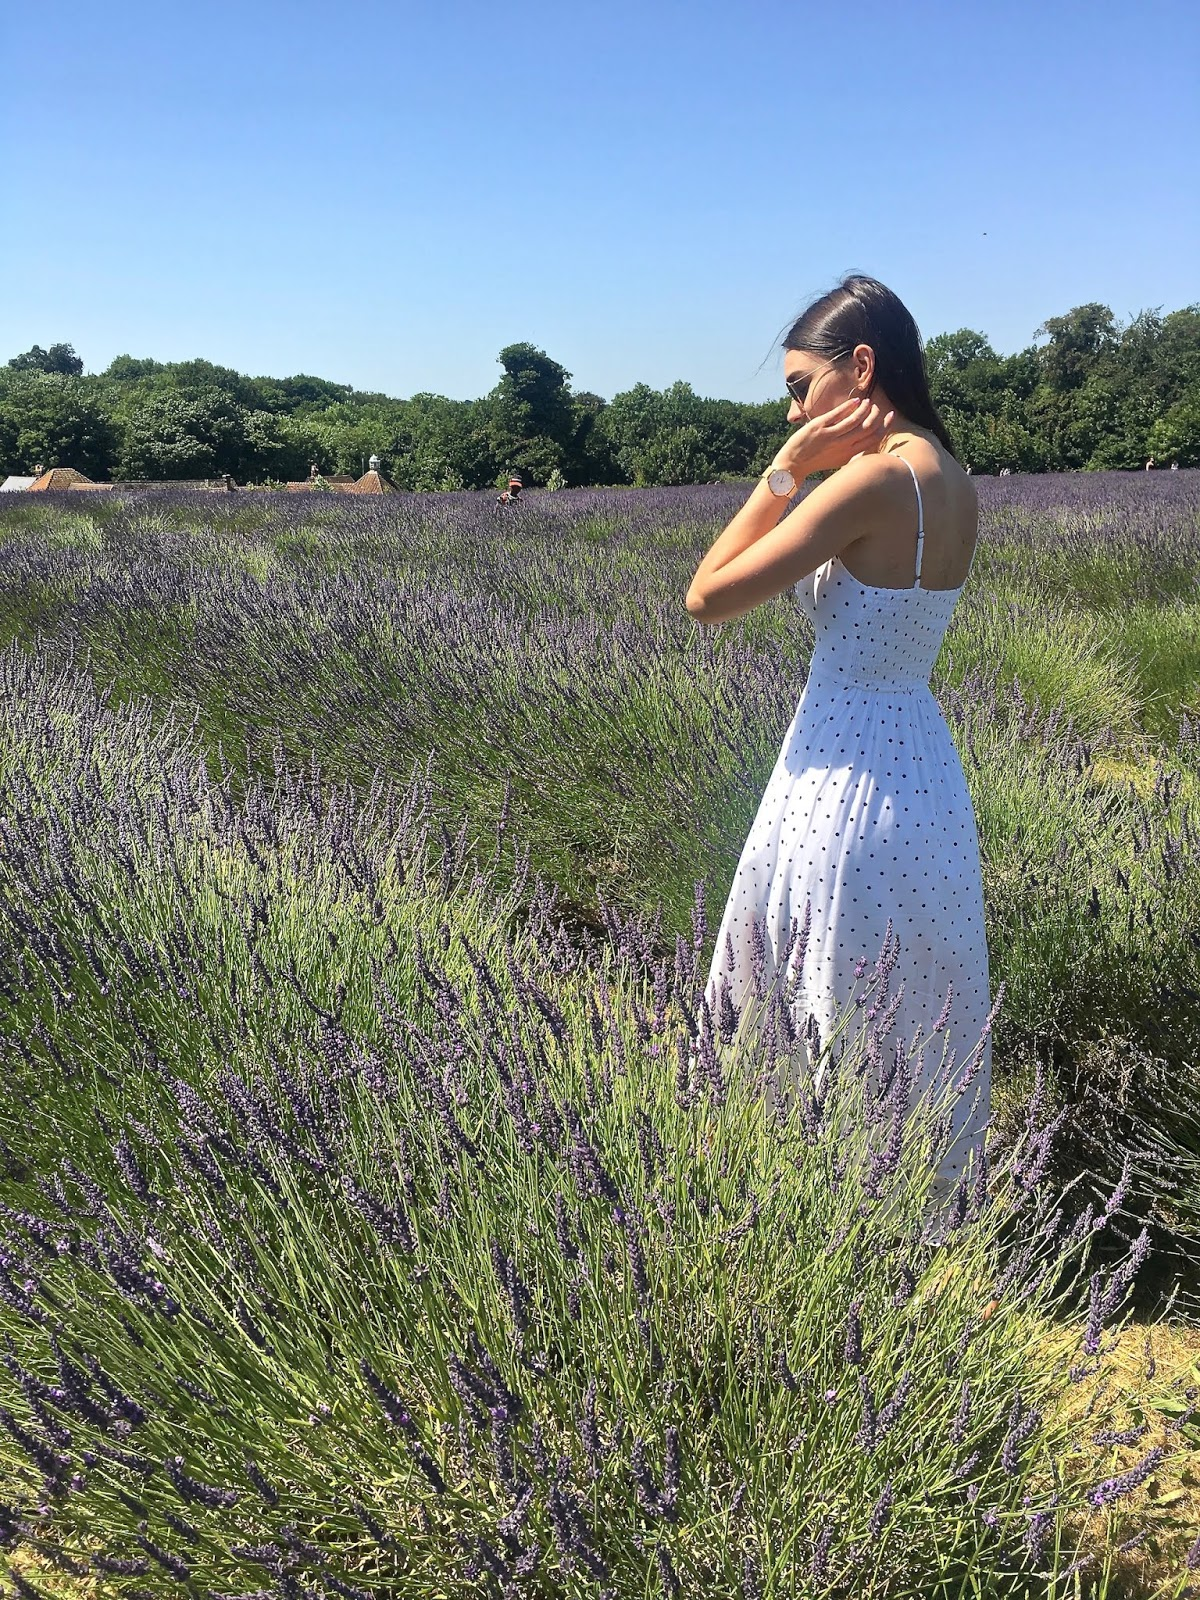 peexo summer fashon lavender fields